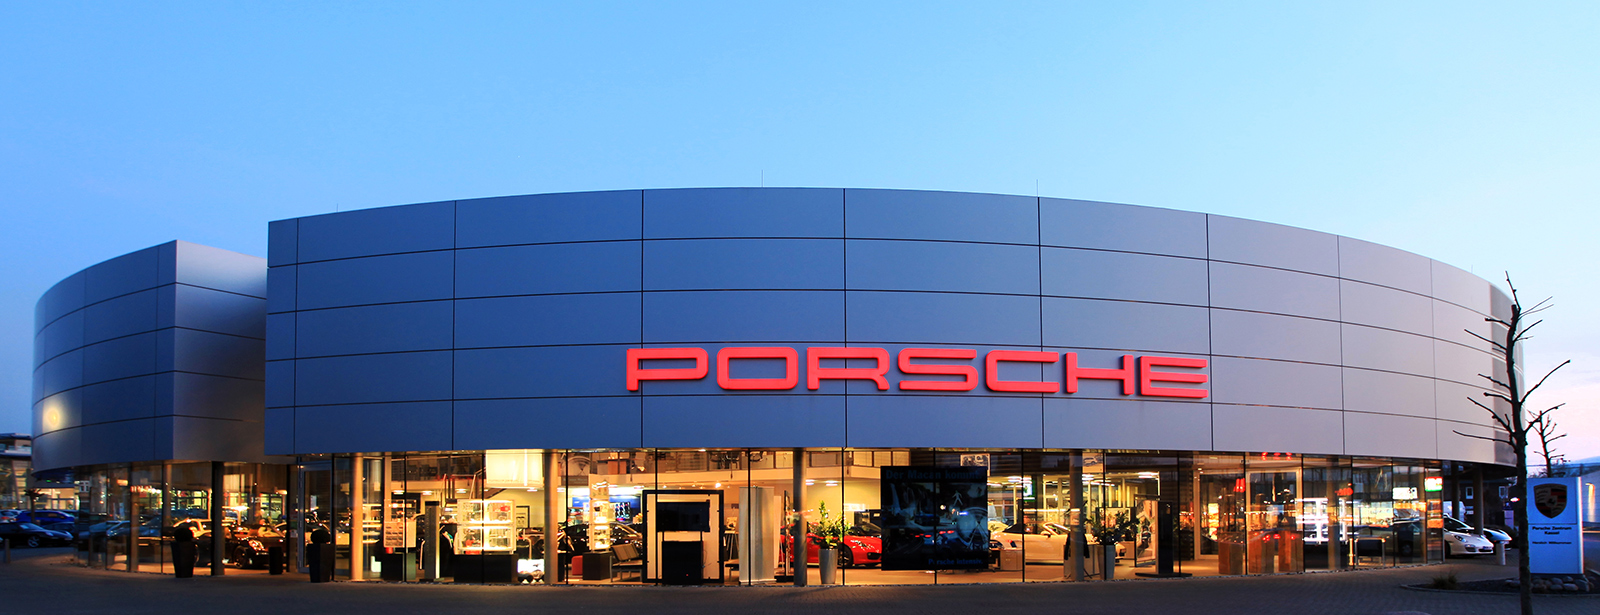 porsche zentrum kassel herzlich willkommen. Black Bedroom Furniture Sets. Home Design Ideas